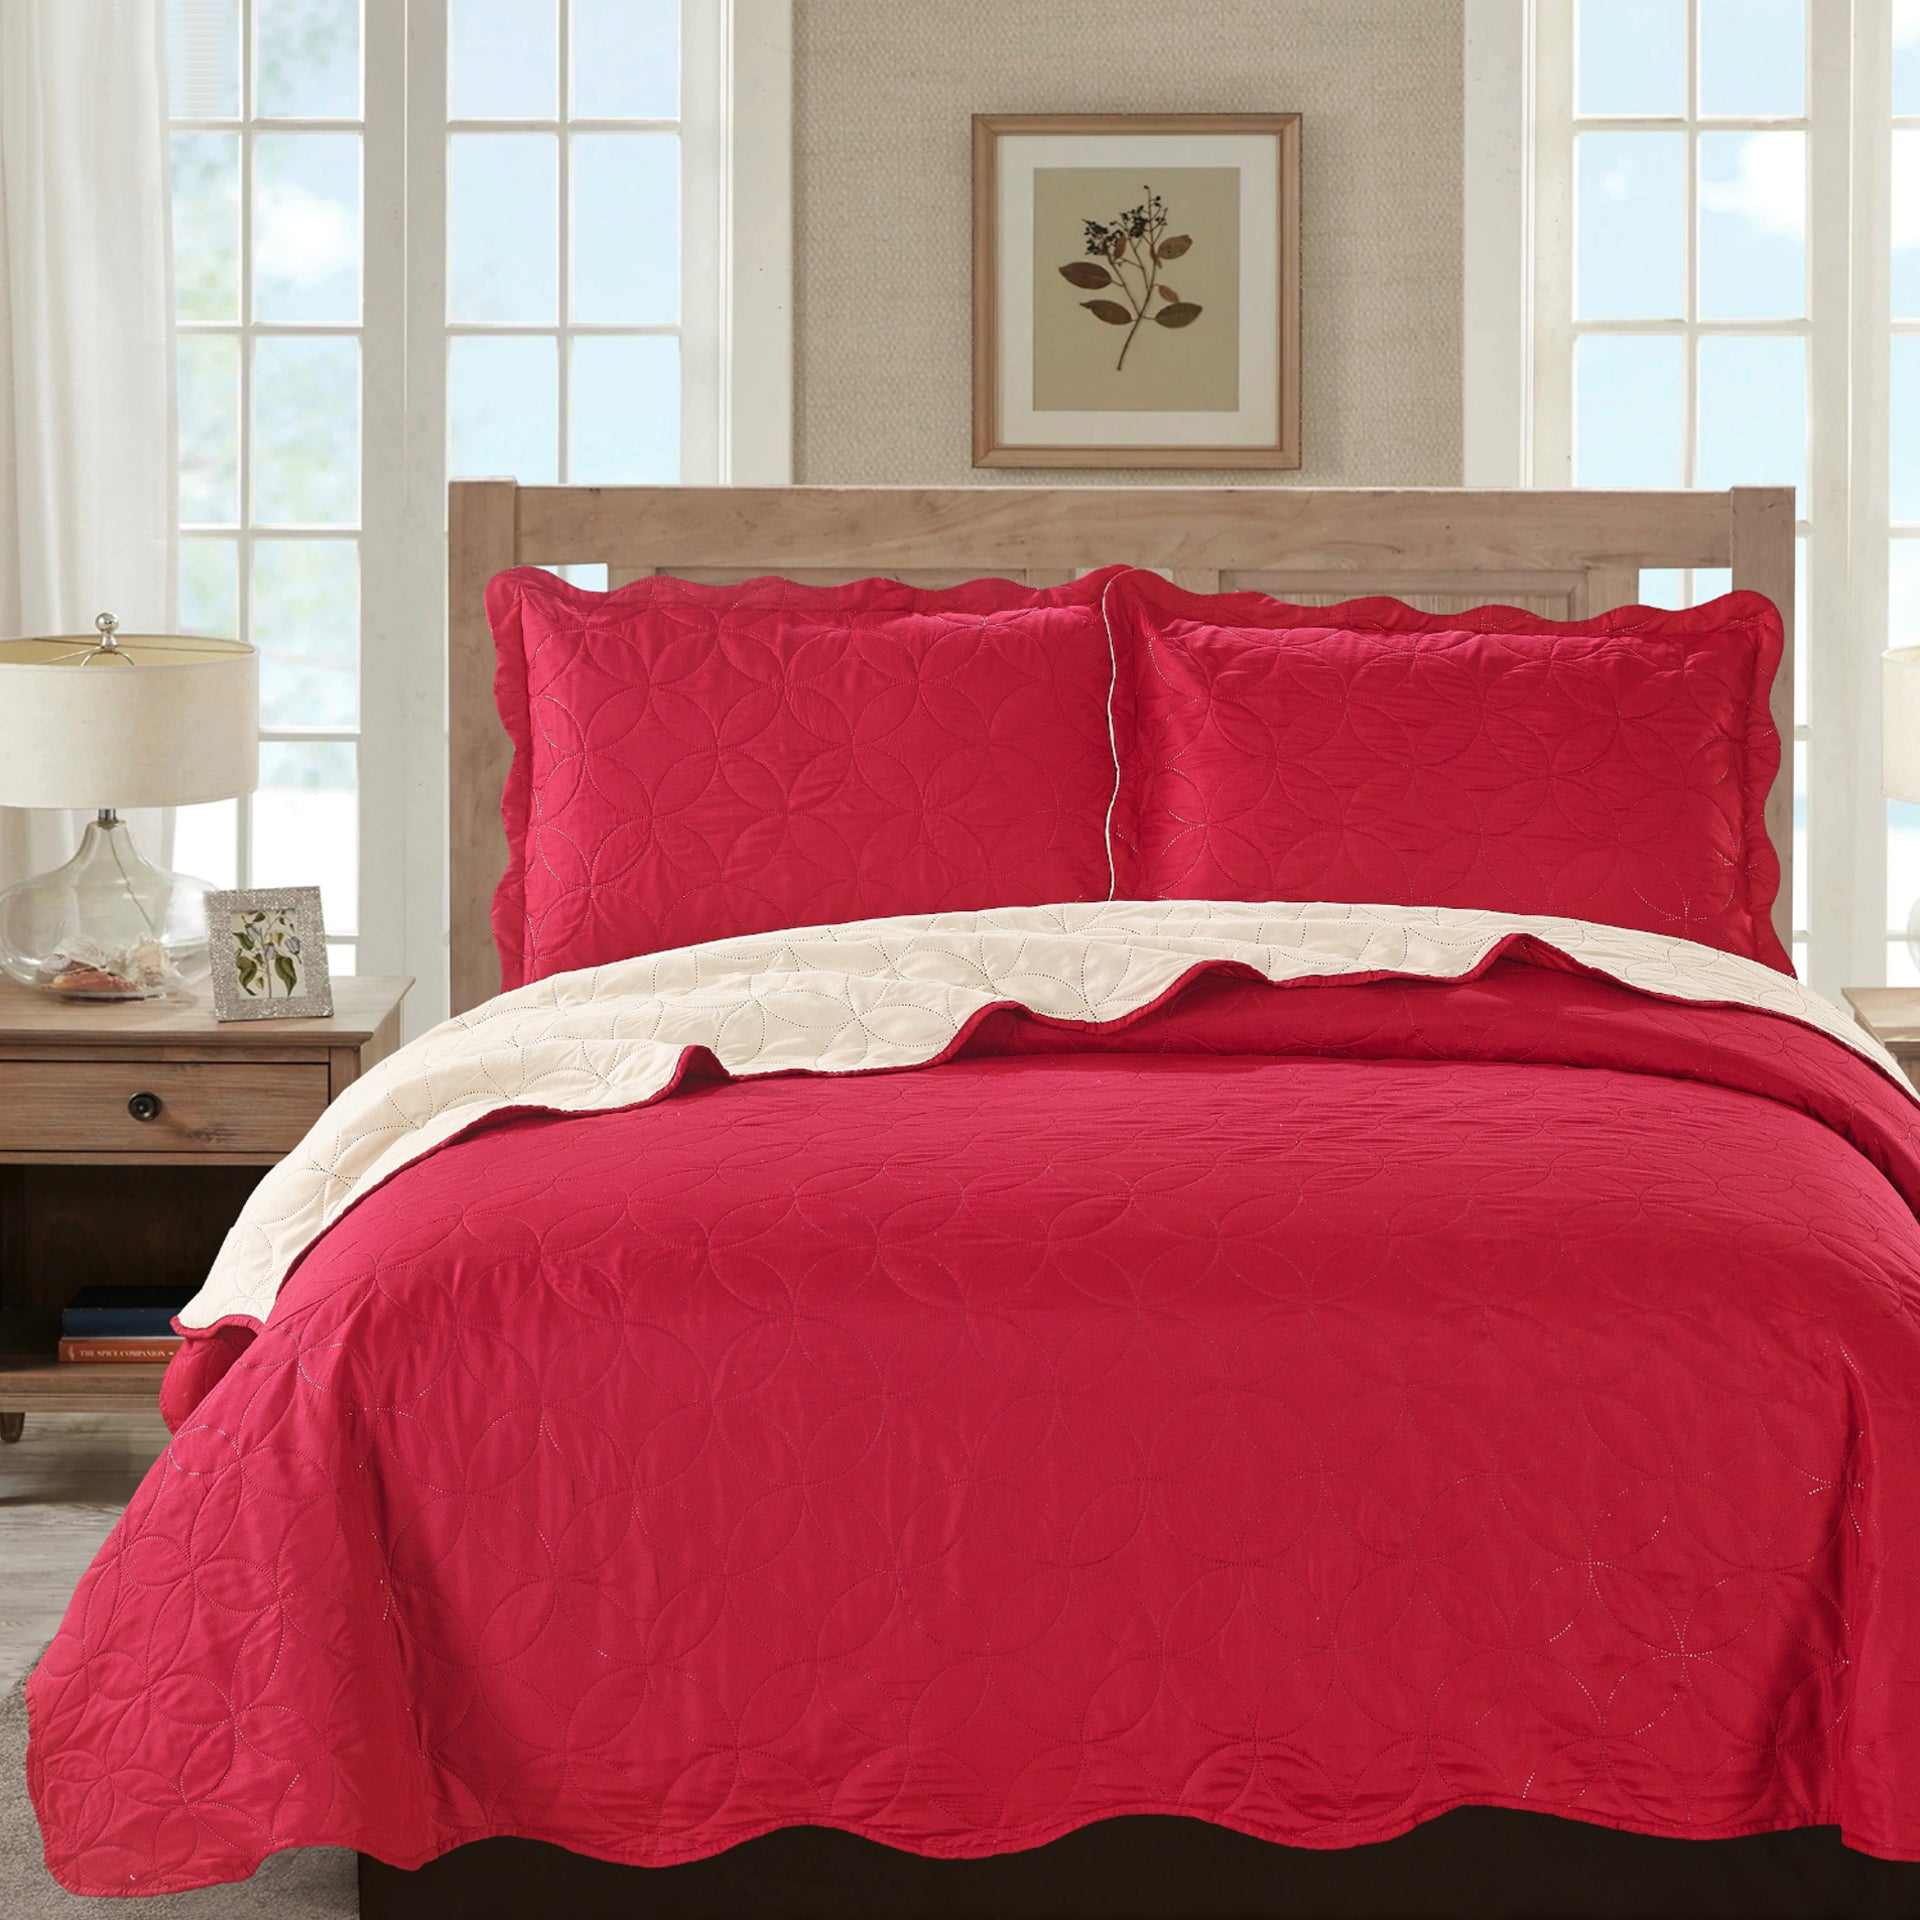 Sherry - 3 Piece - Solid Reversible Quilt Set - Red - Glory Home Design